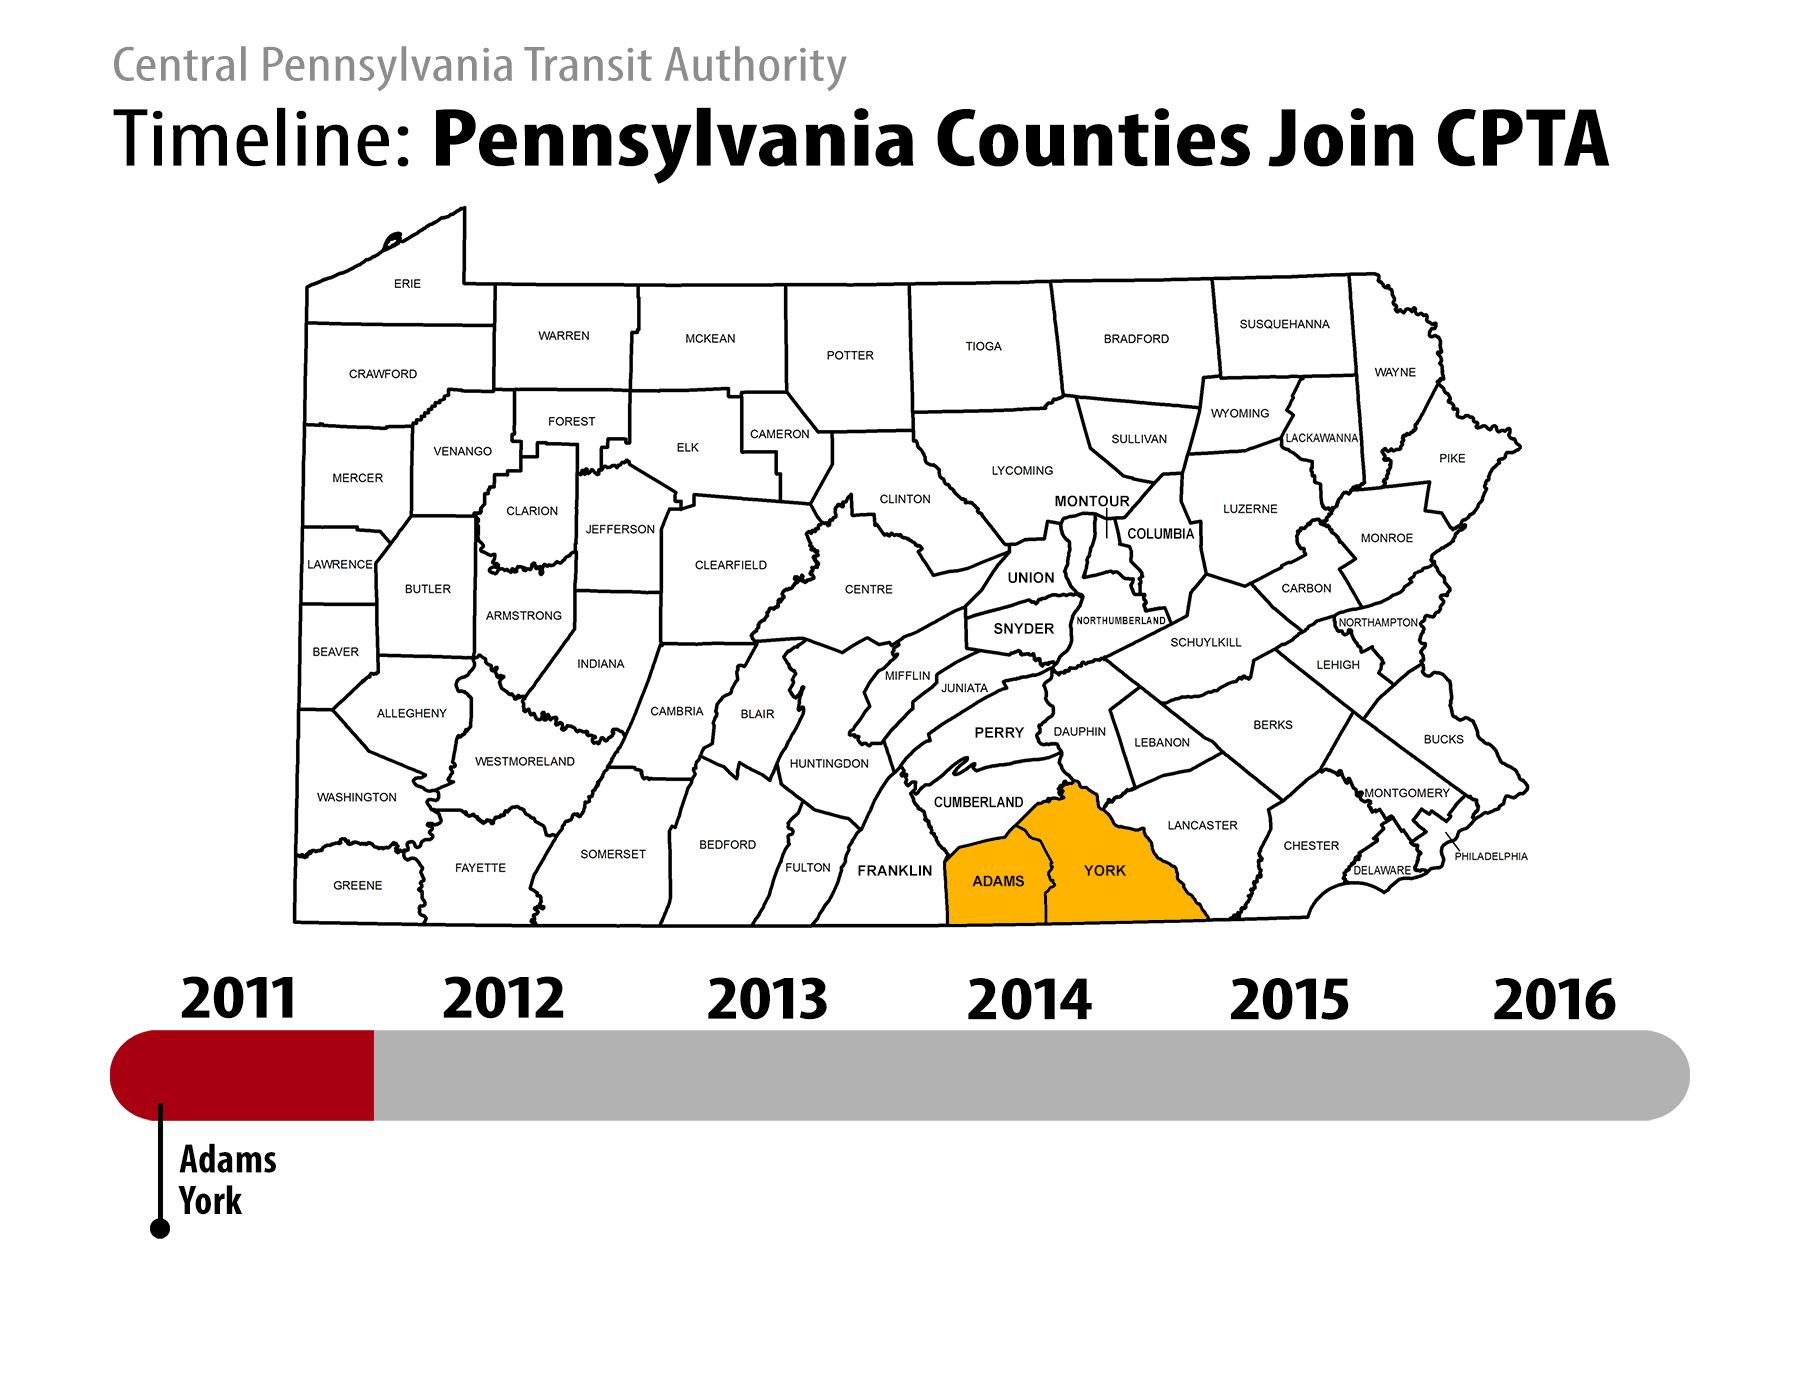 1CPTA County Timeline 6x4.5 Adams York